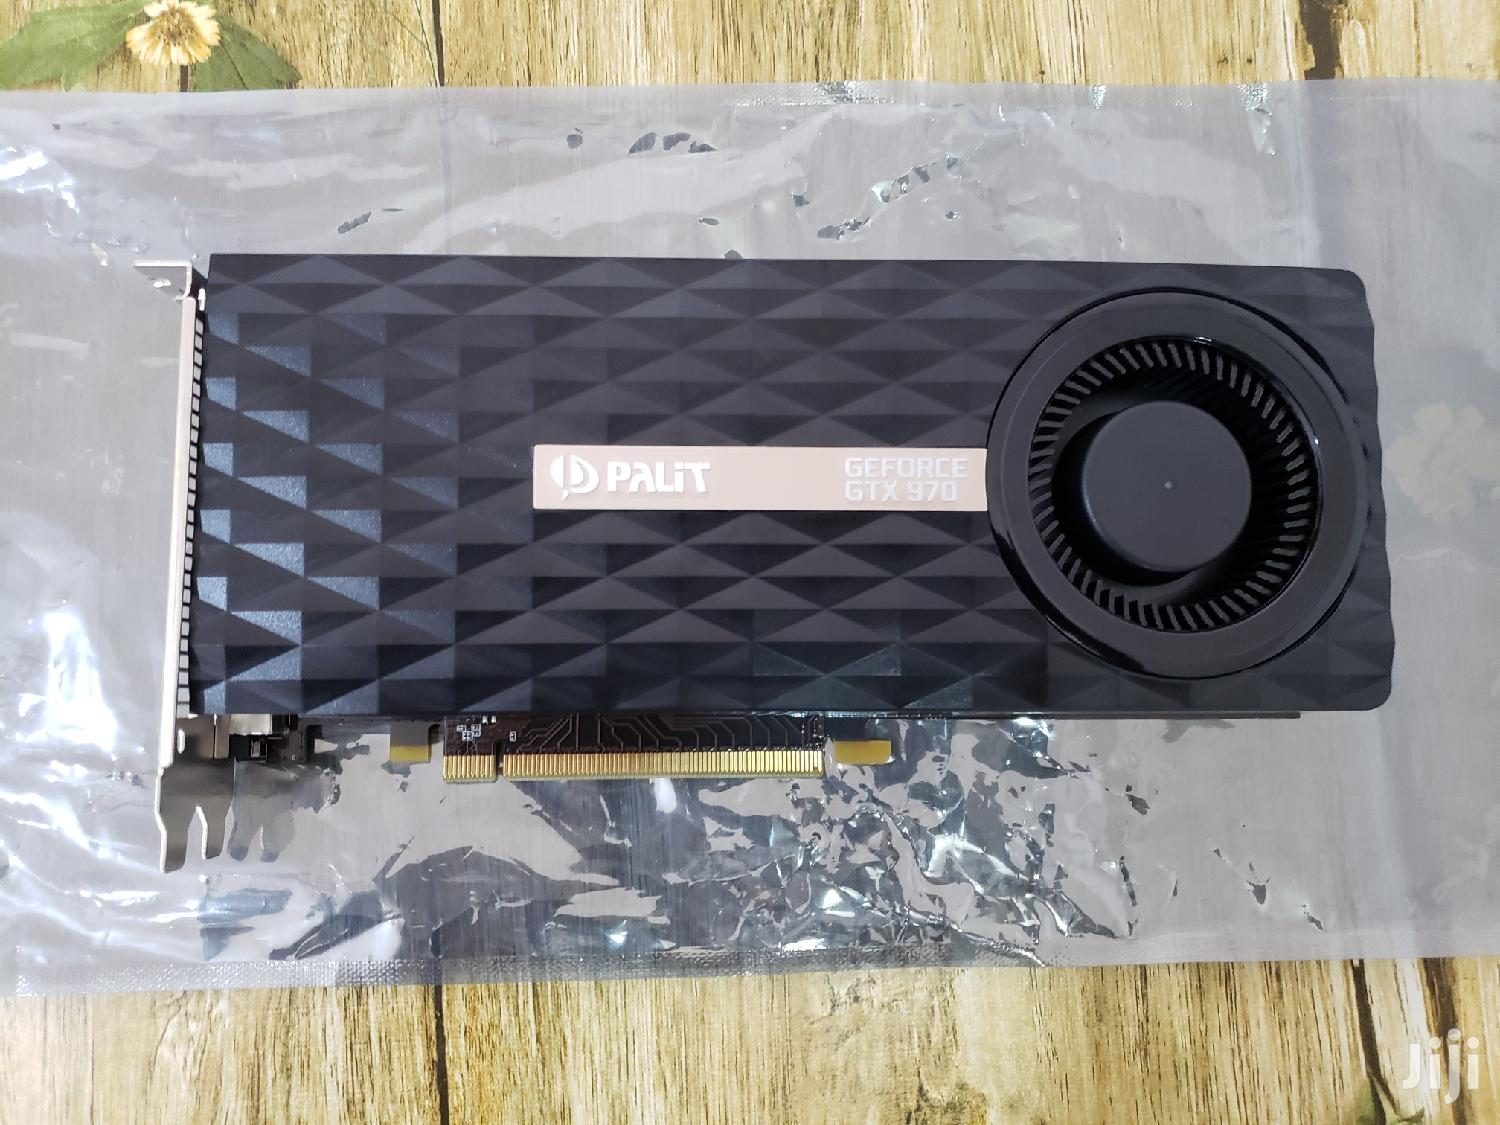 Archive: Palit Gtx 970 4gb Graphic Card